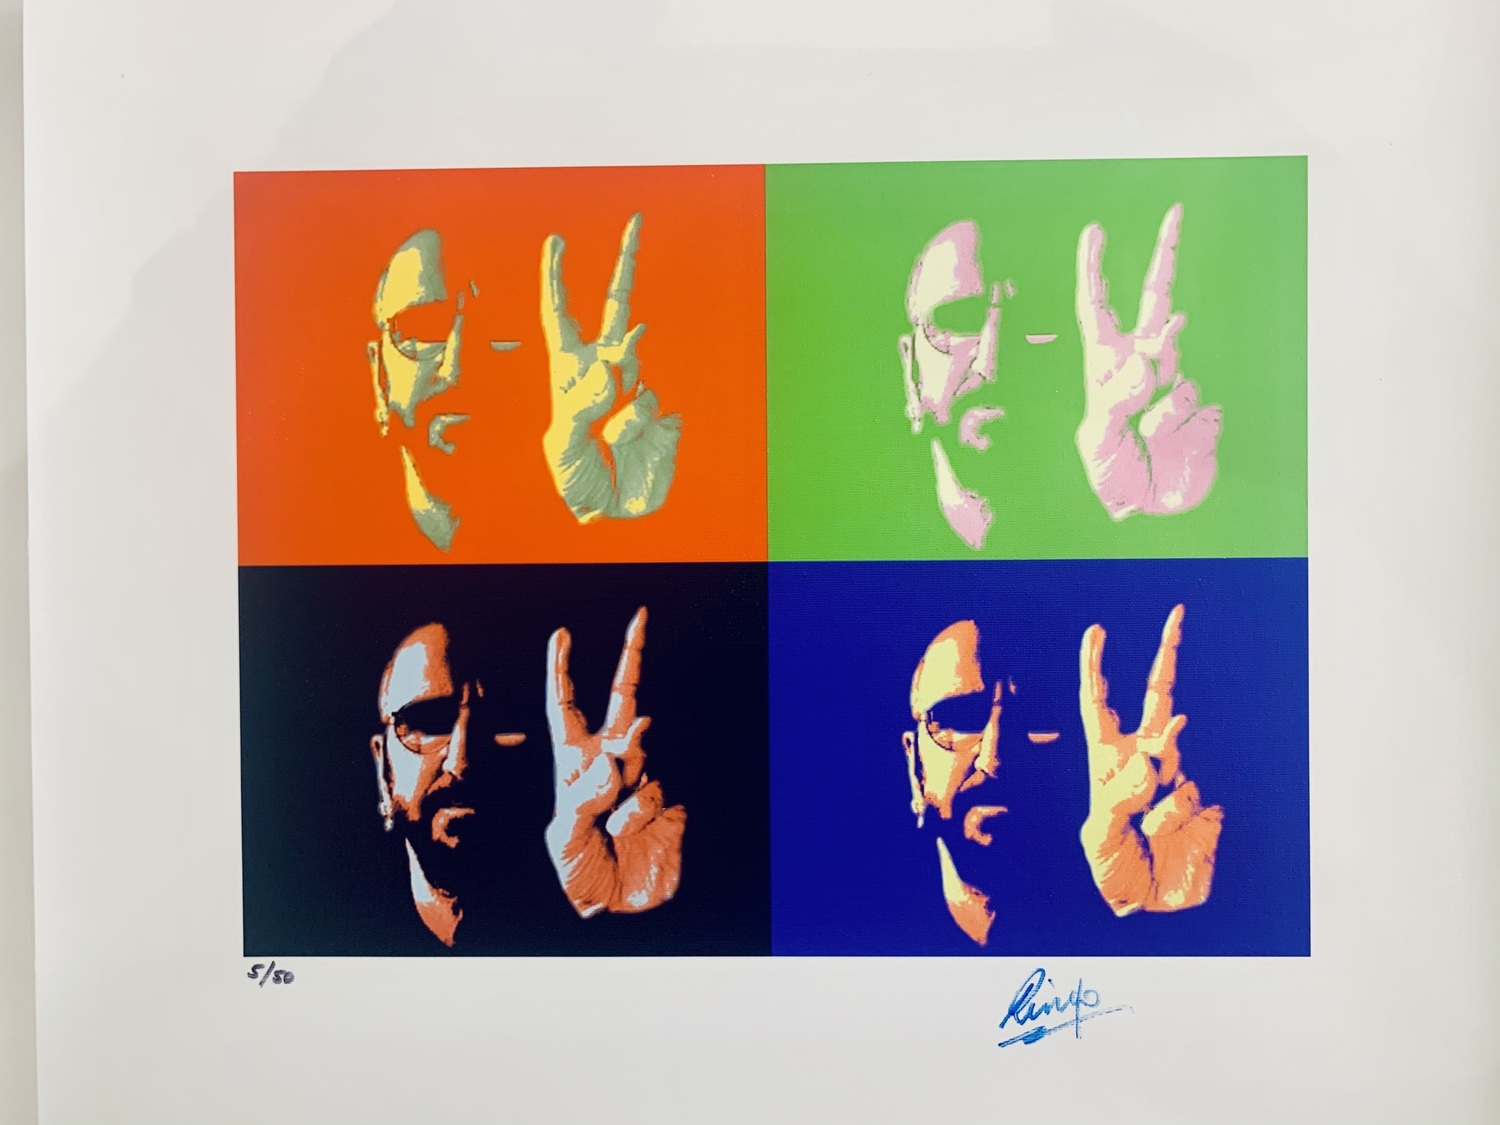 Peace & Love - Limited Art Print by Ringo Starr